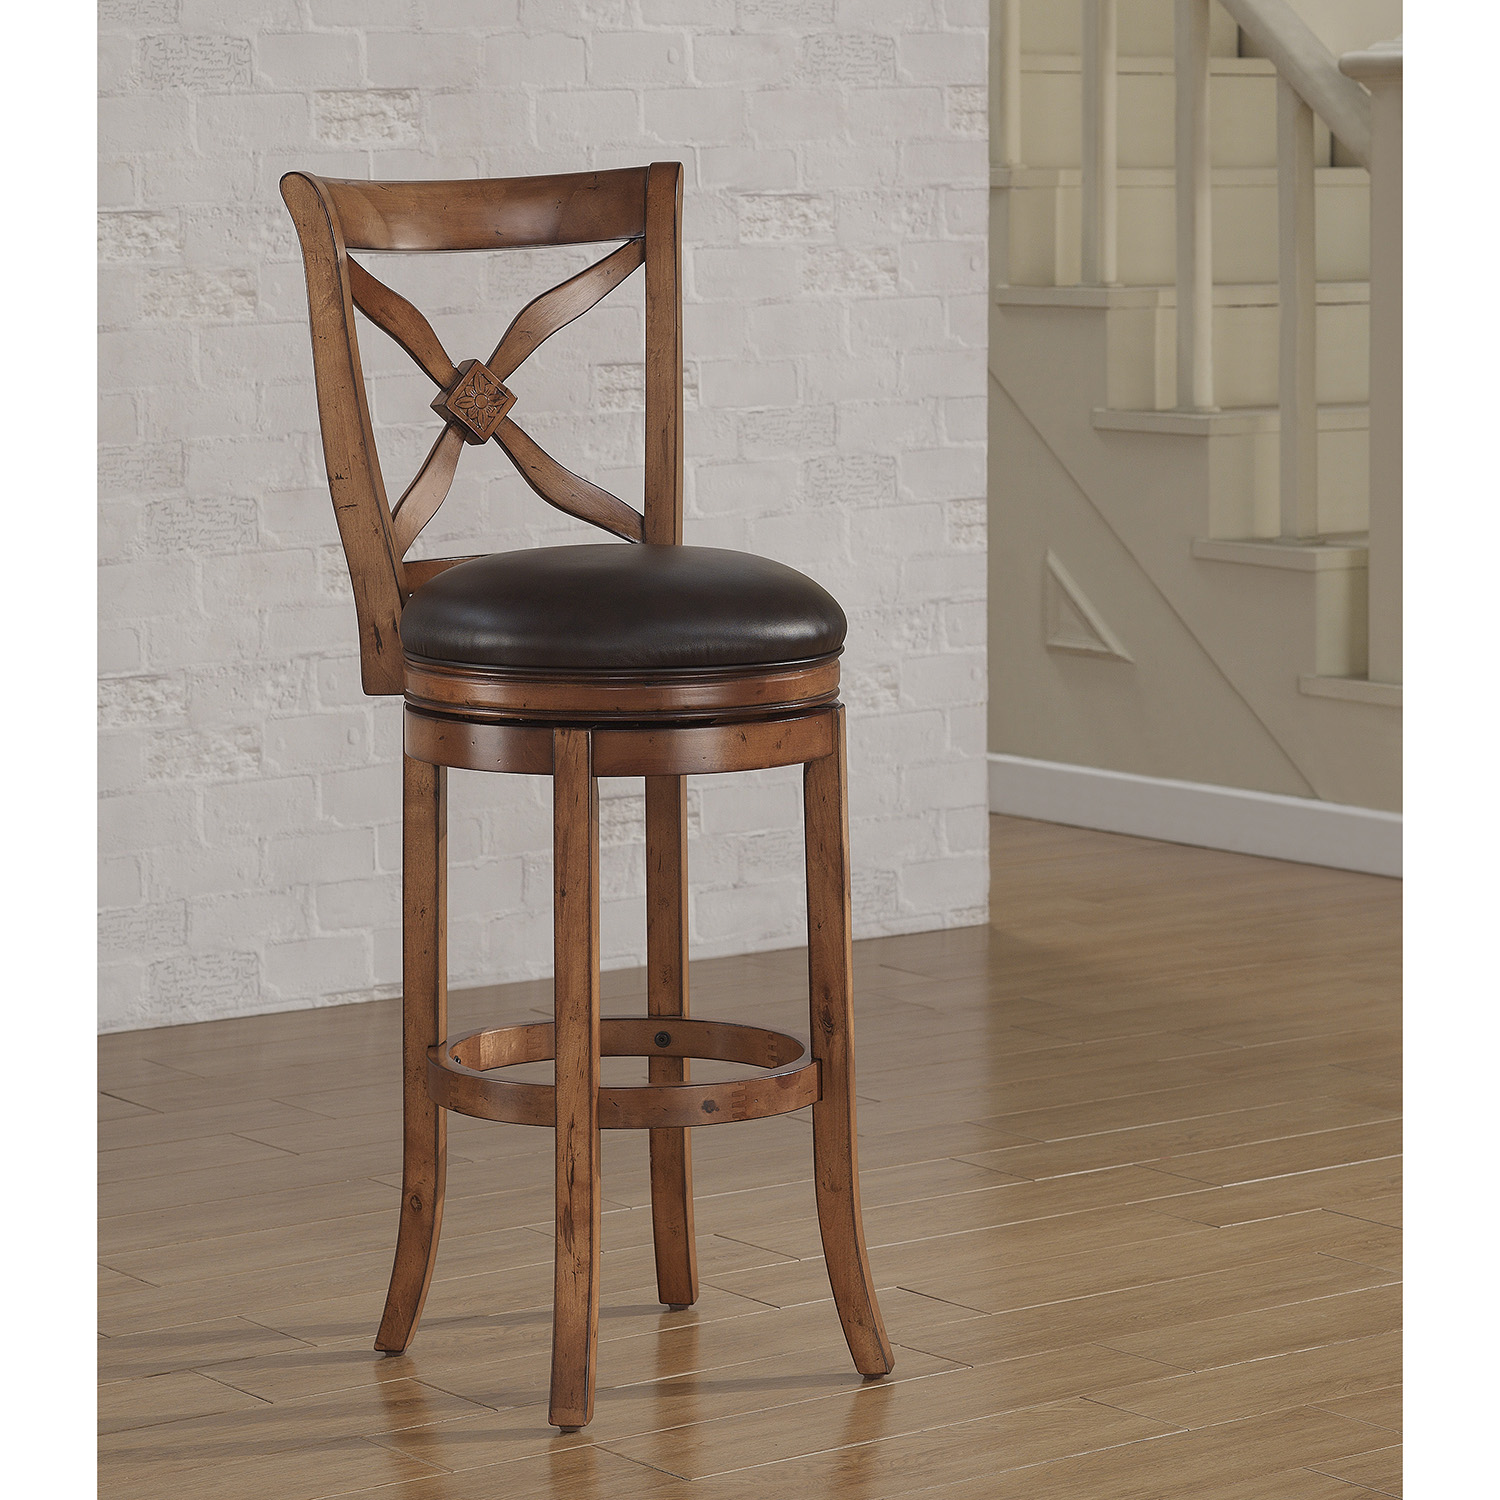 Provence Swivel Tall Bar Stool Light Oak Bourbon Bonded